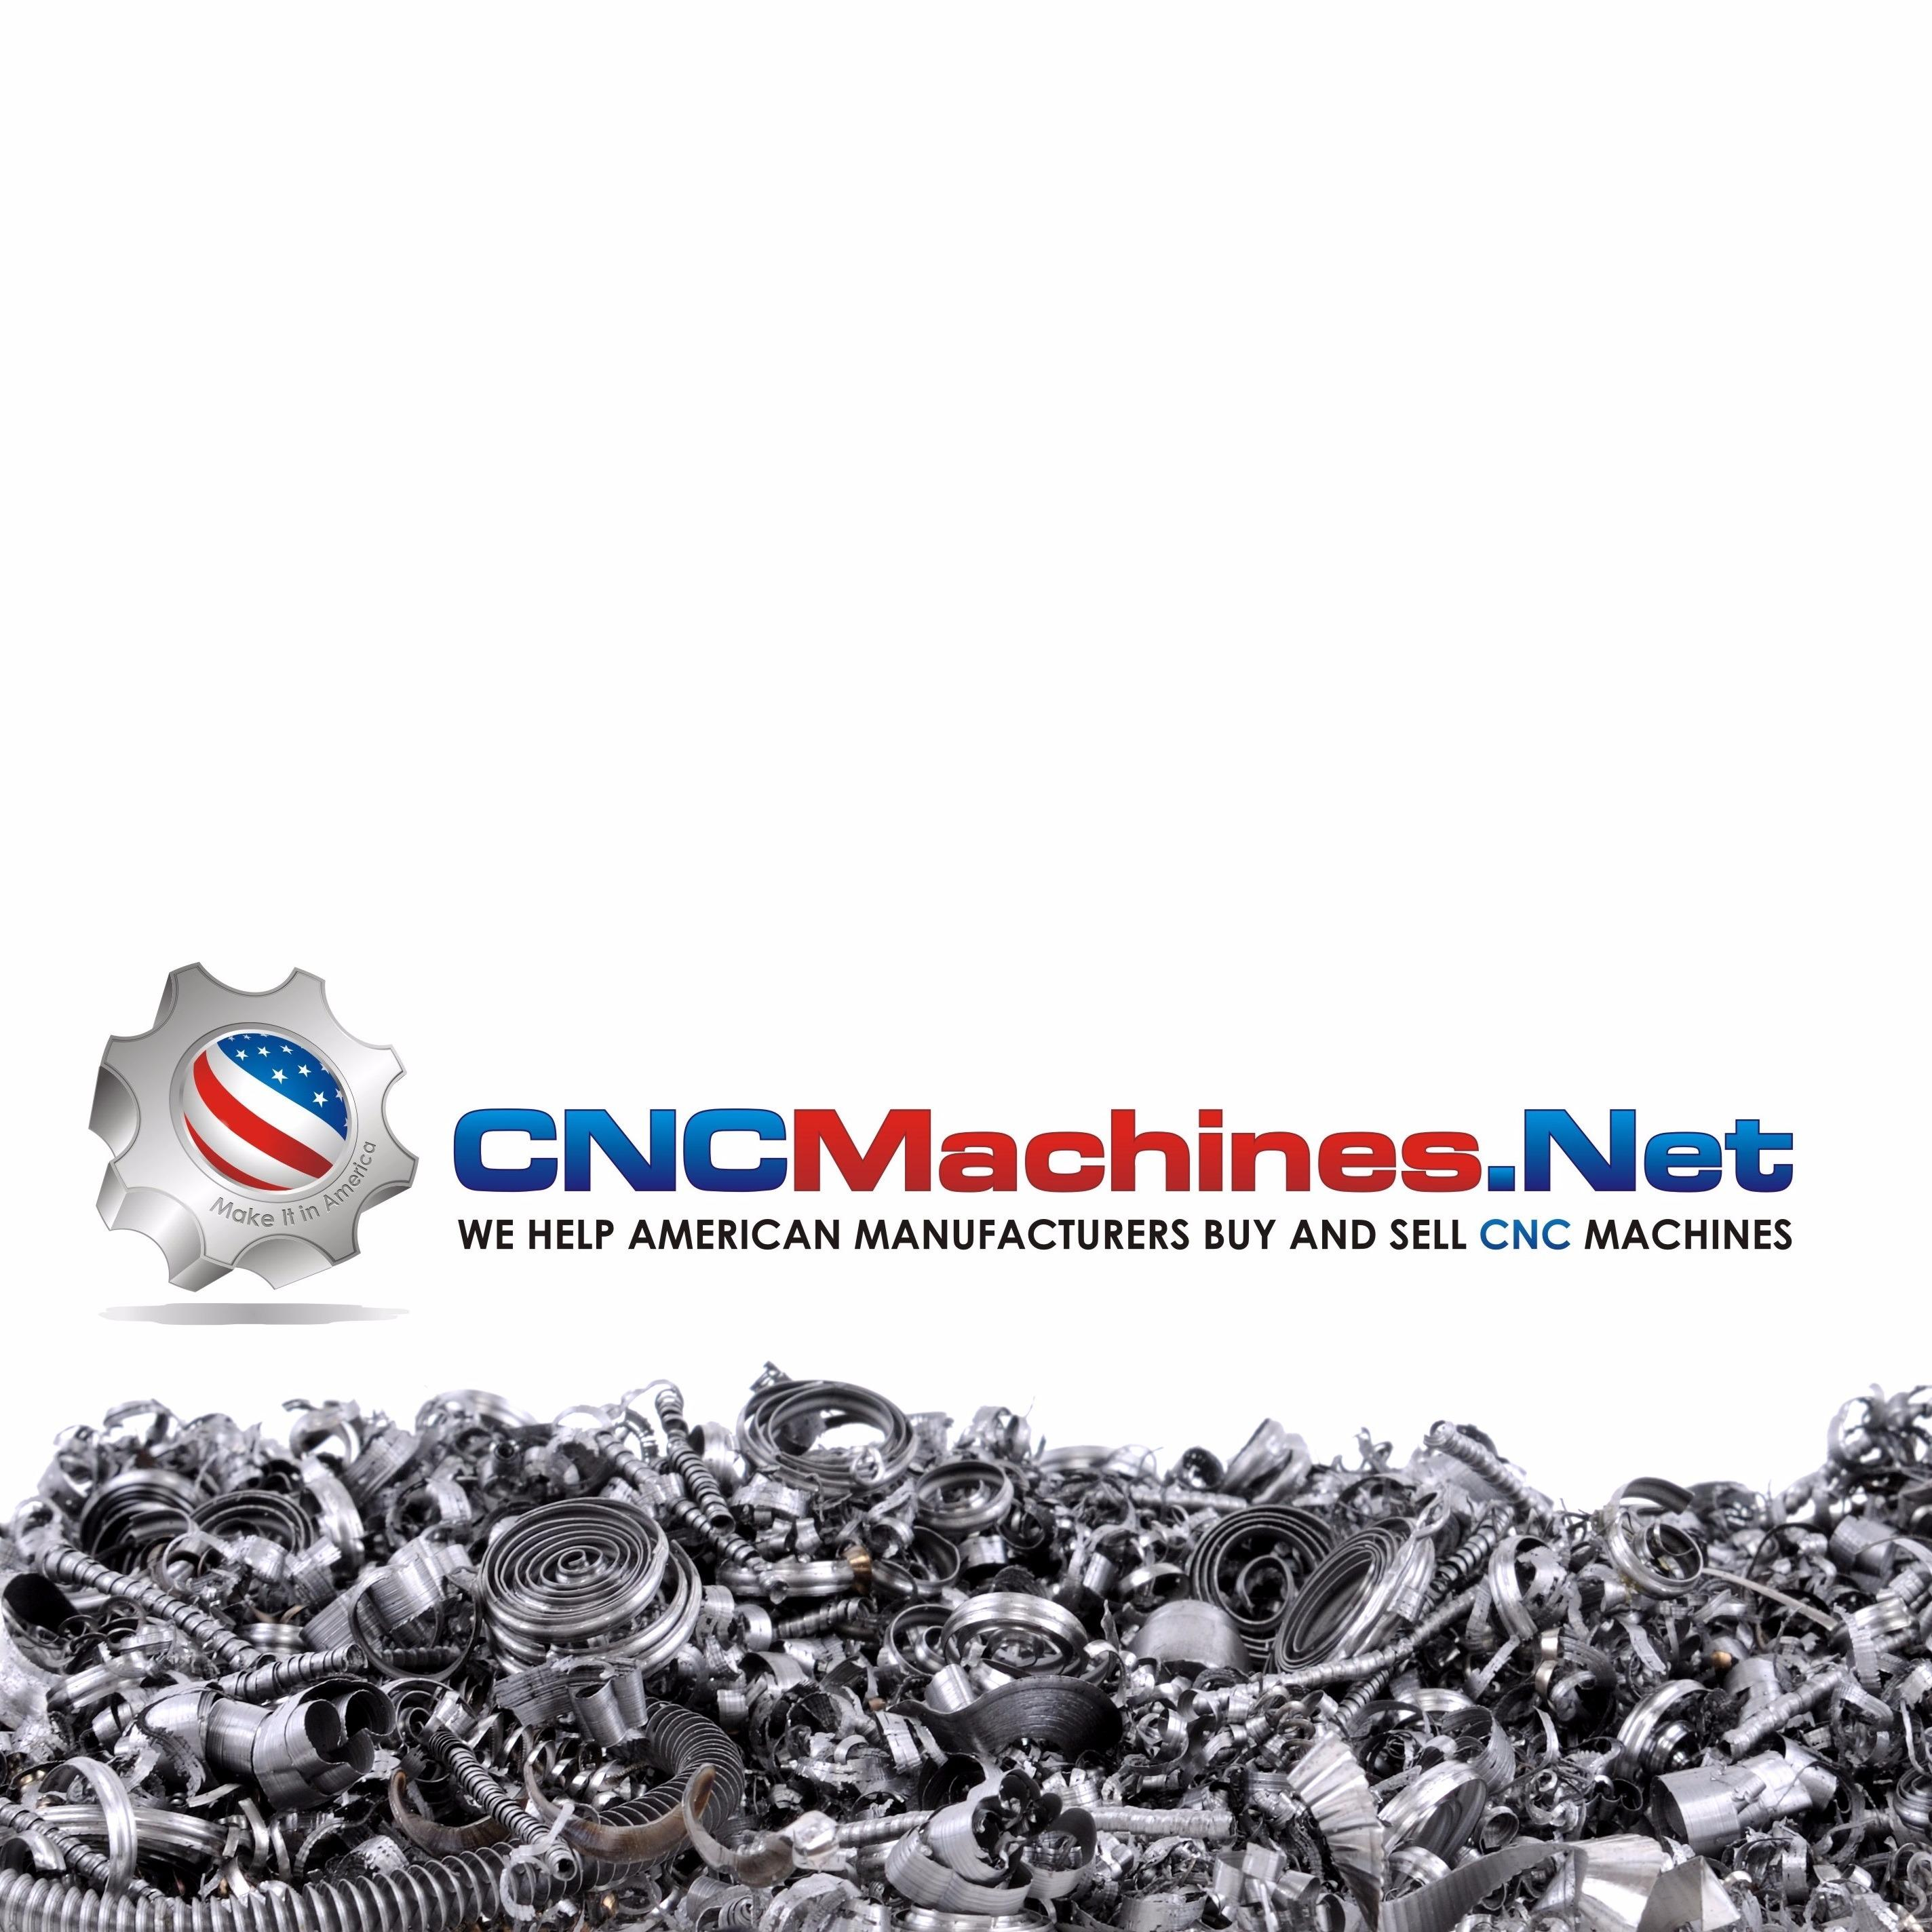 CNCMachines.Net